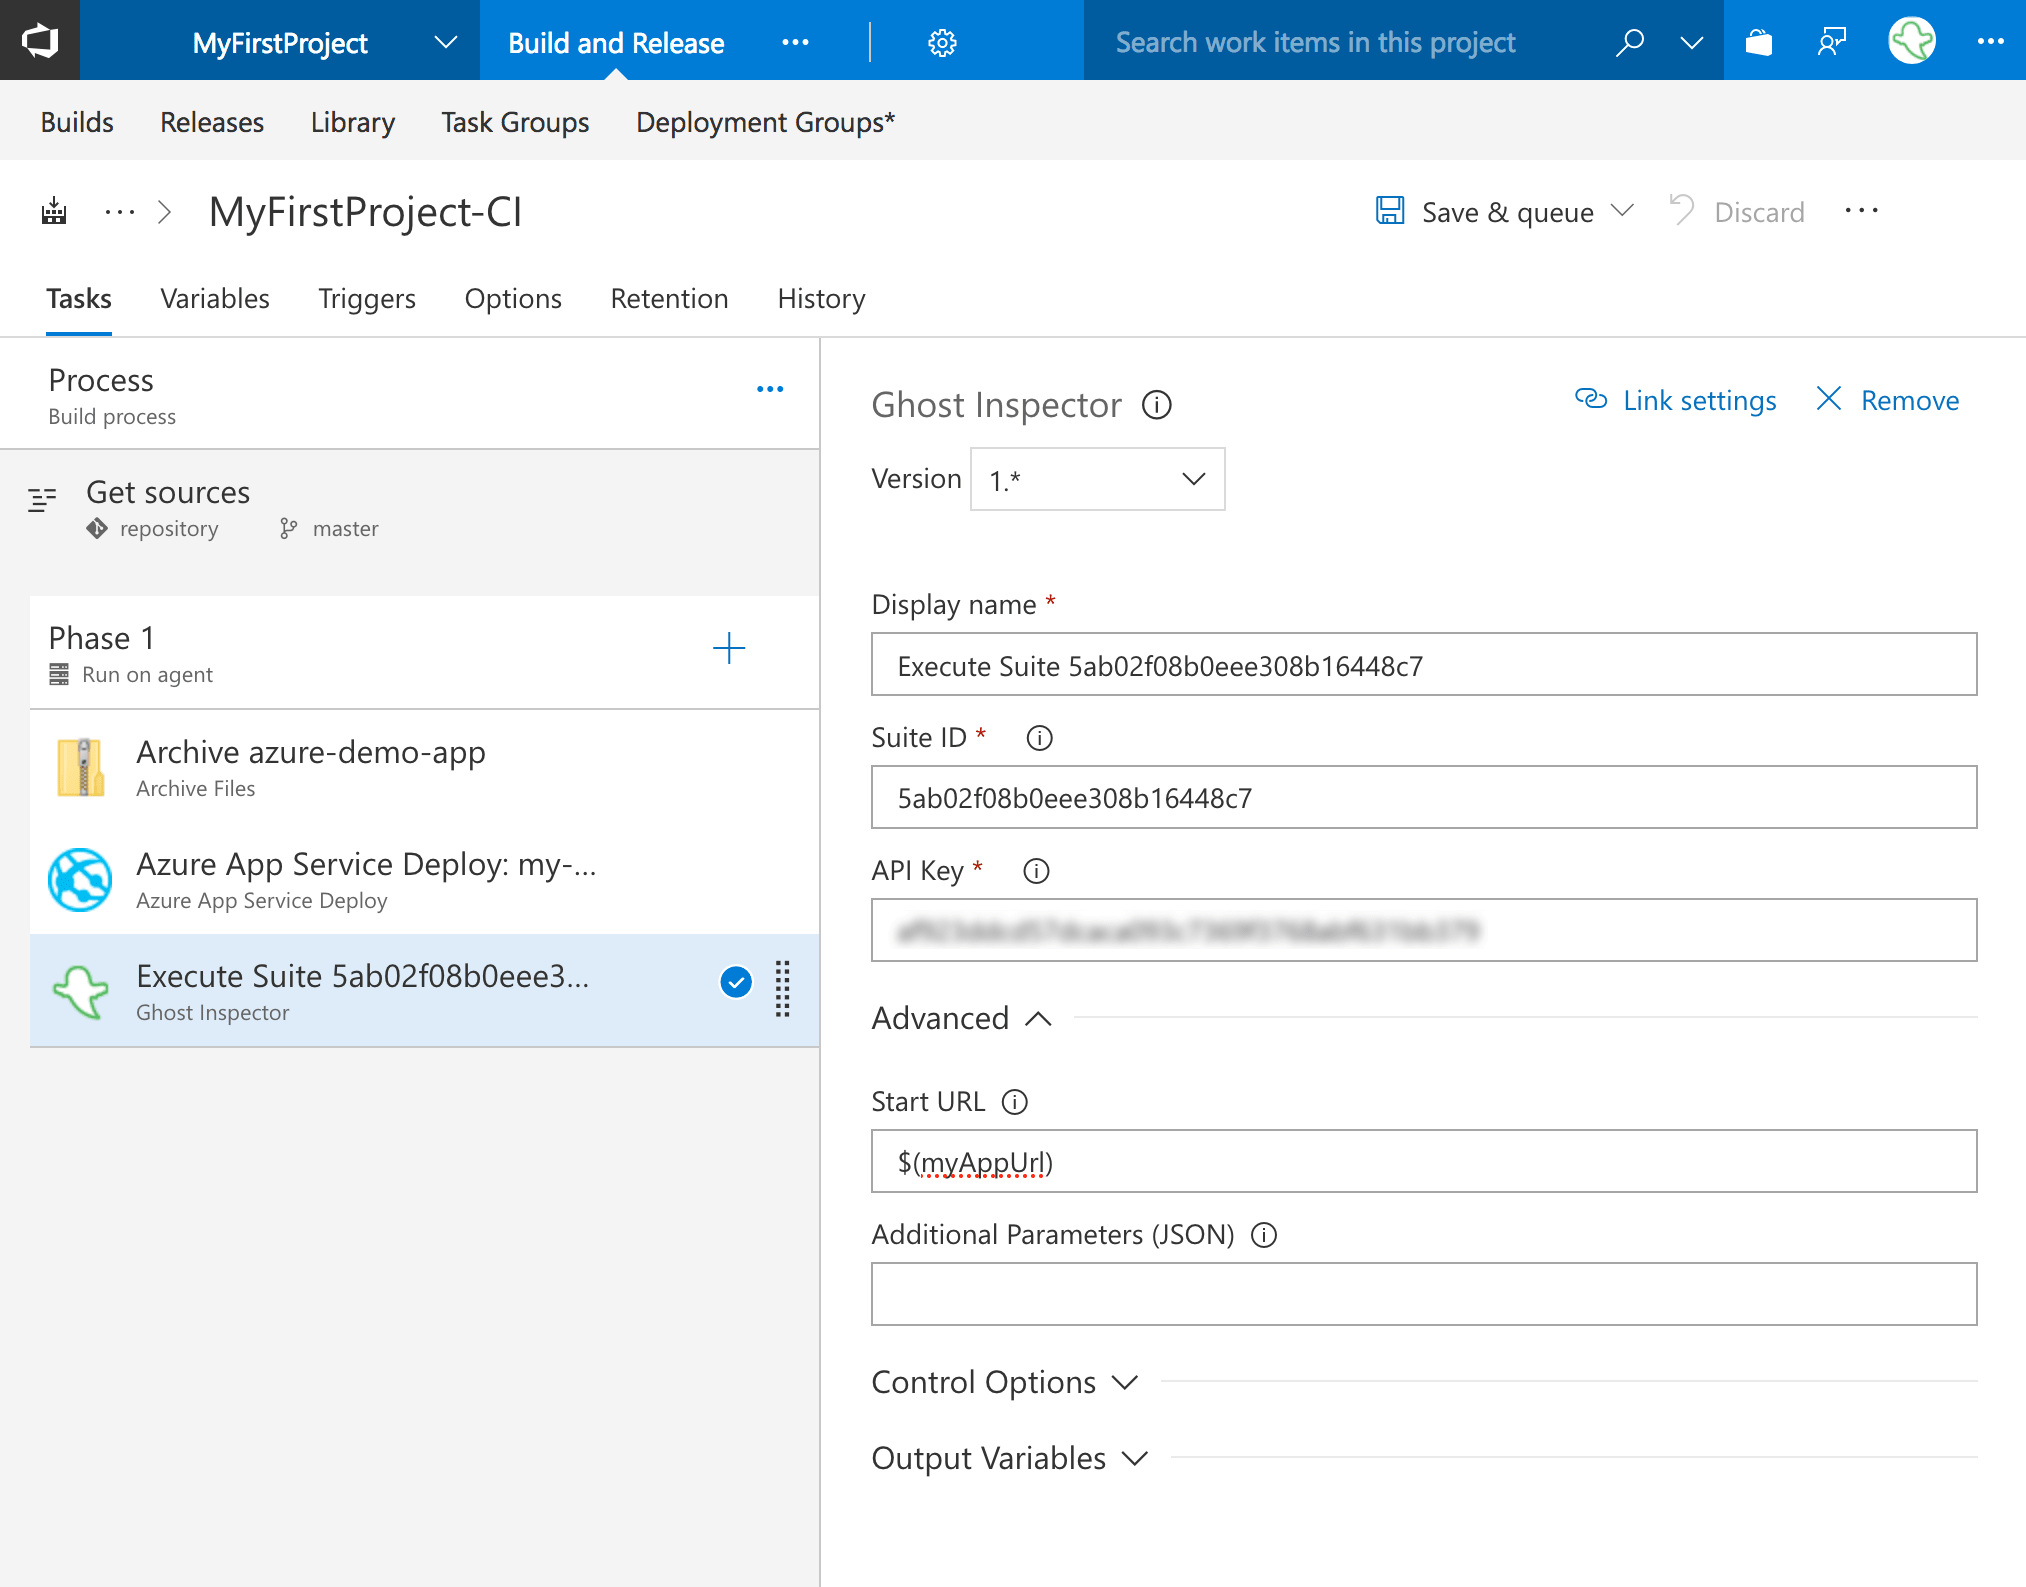 Configure the Ghost Inspector extension in VSTS